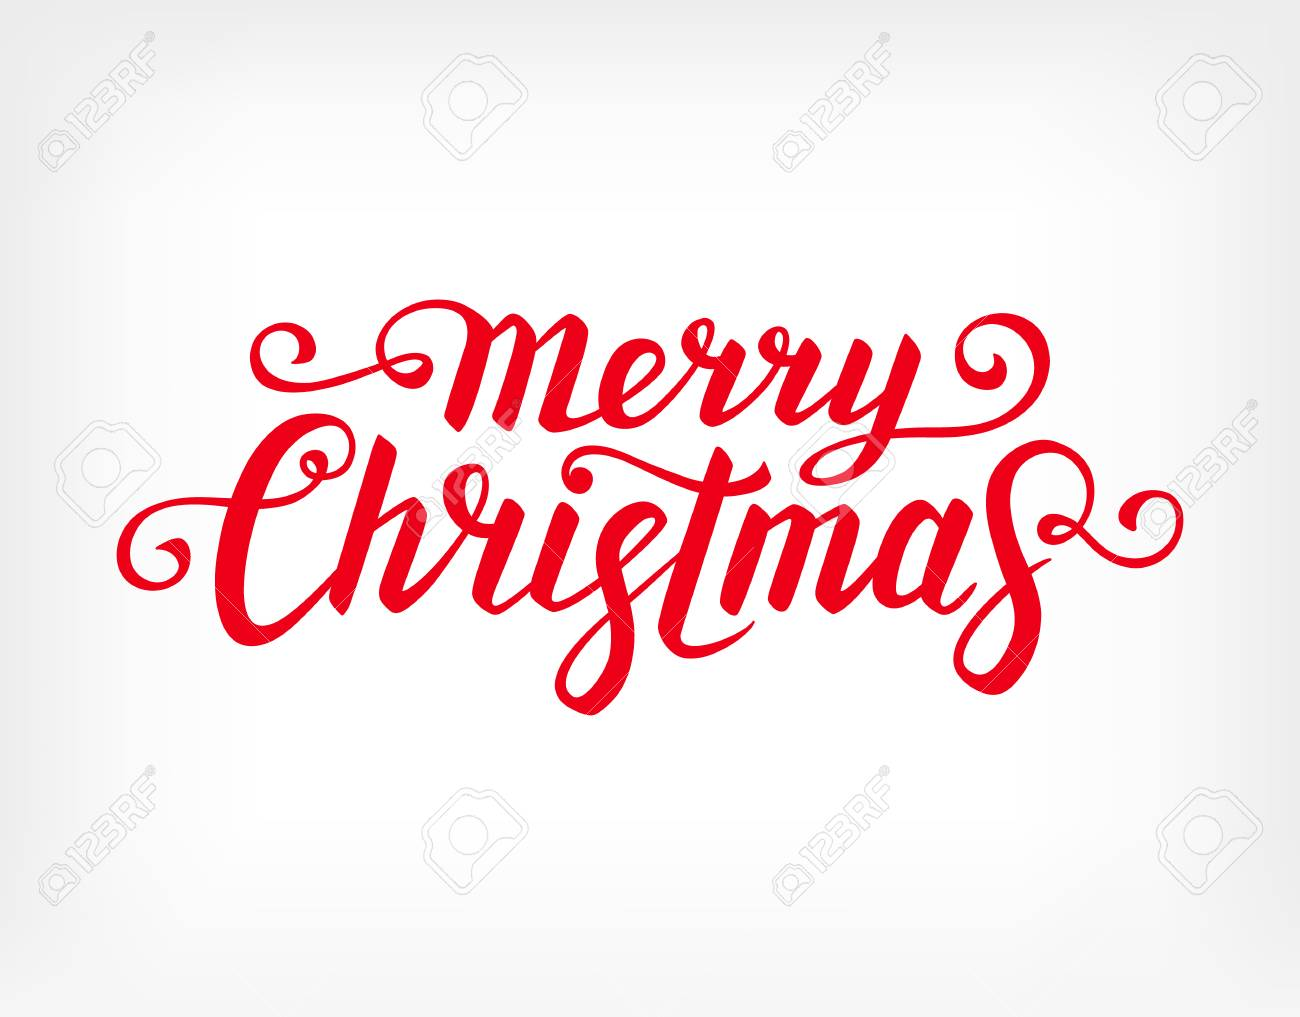 Merry Christmas text. Calligraphic Lettering. Greeting card template.